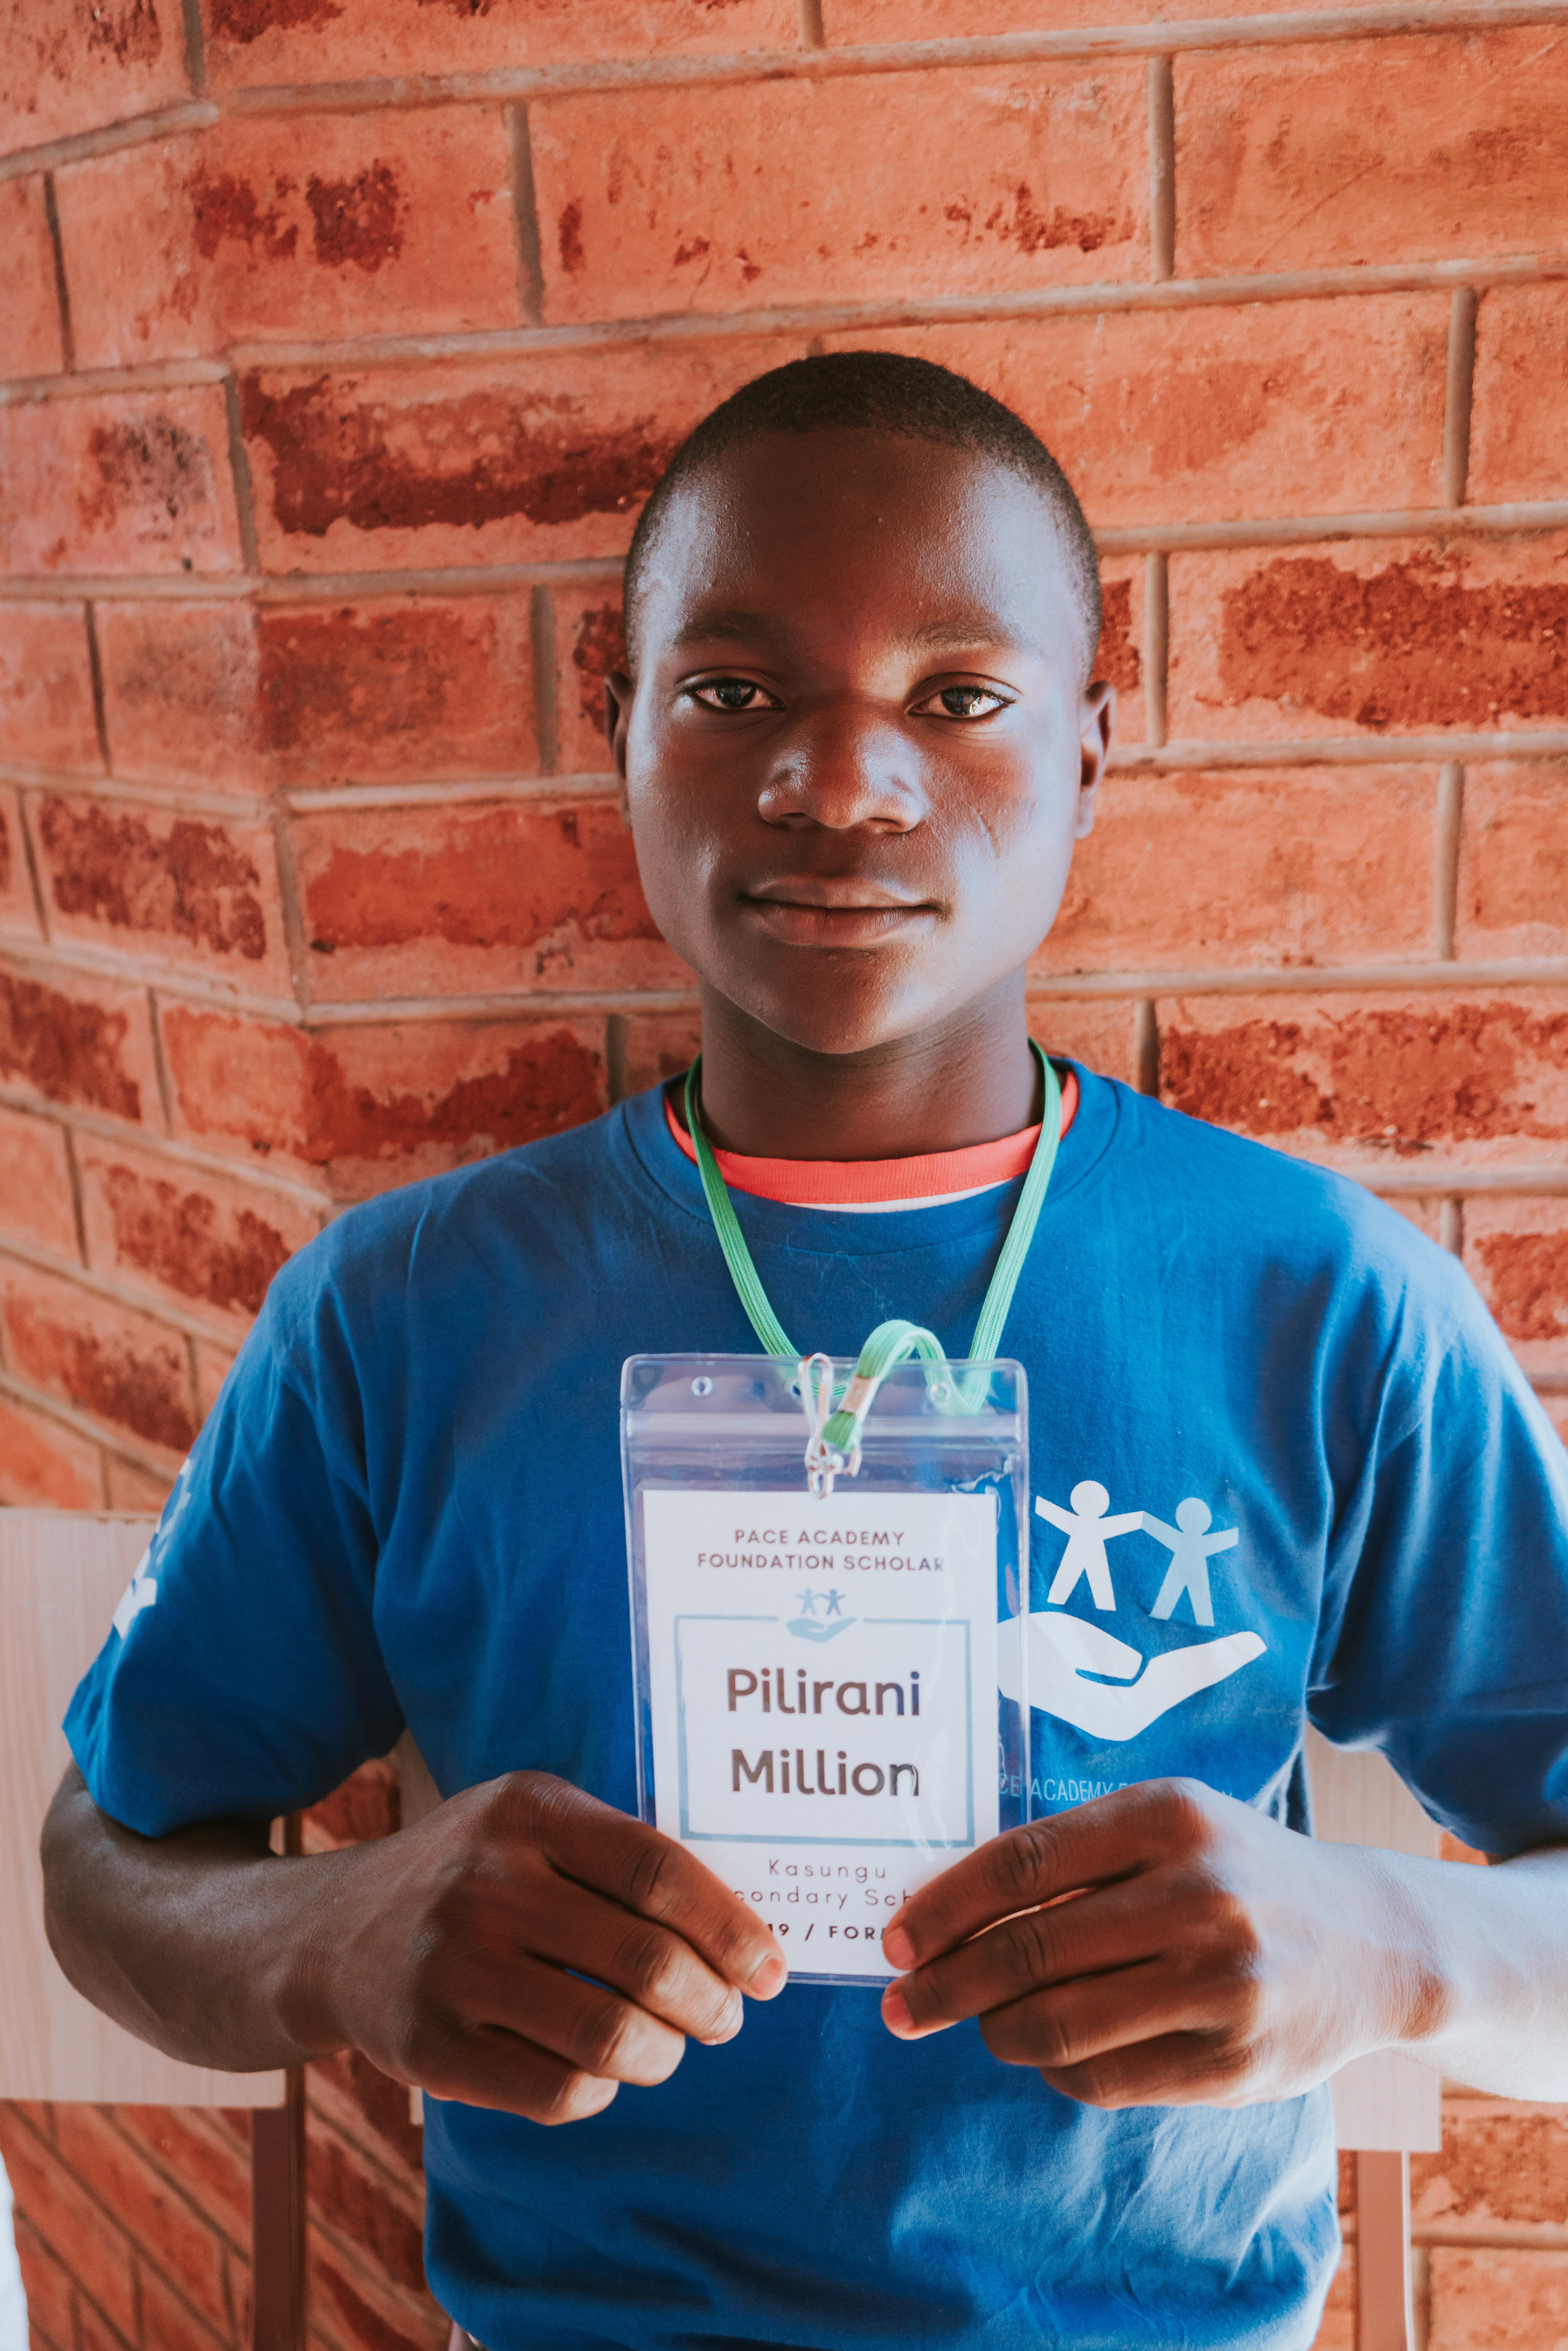 Pilirani Million (Kasungu Secondary Scho